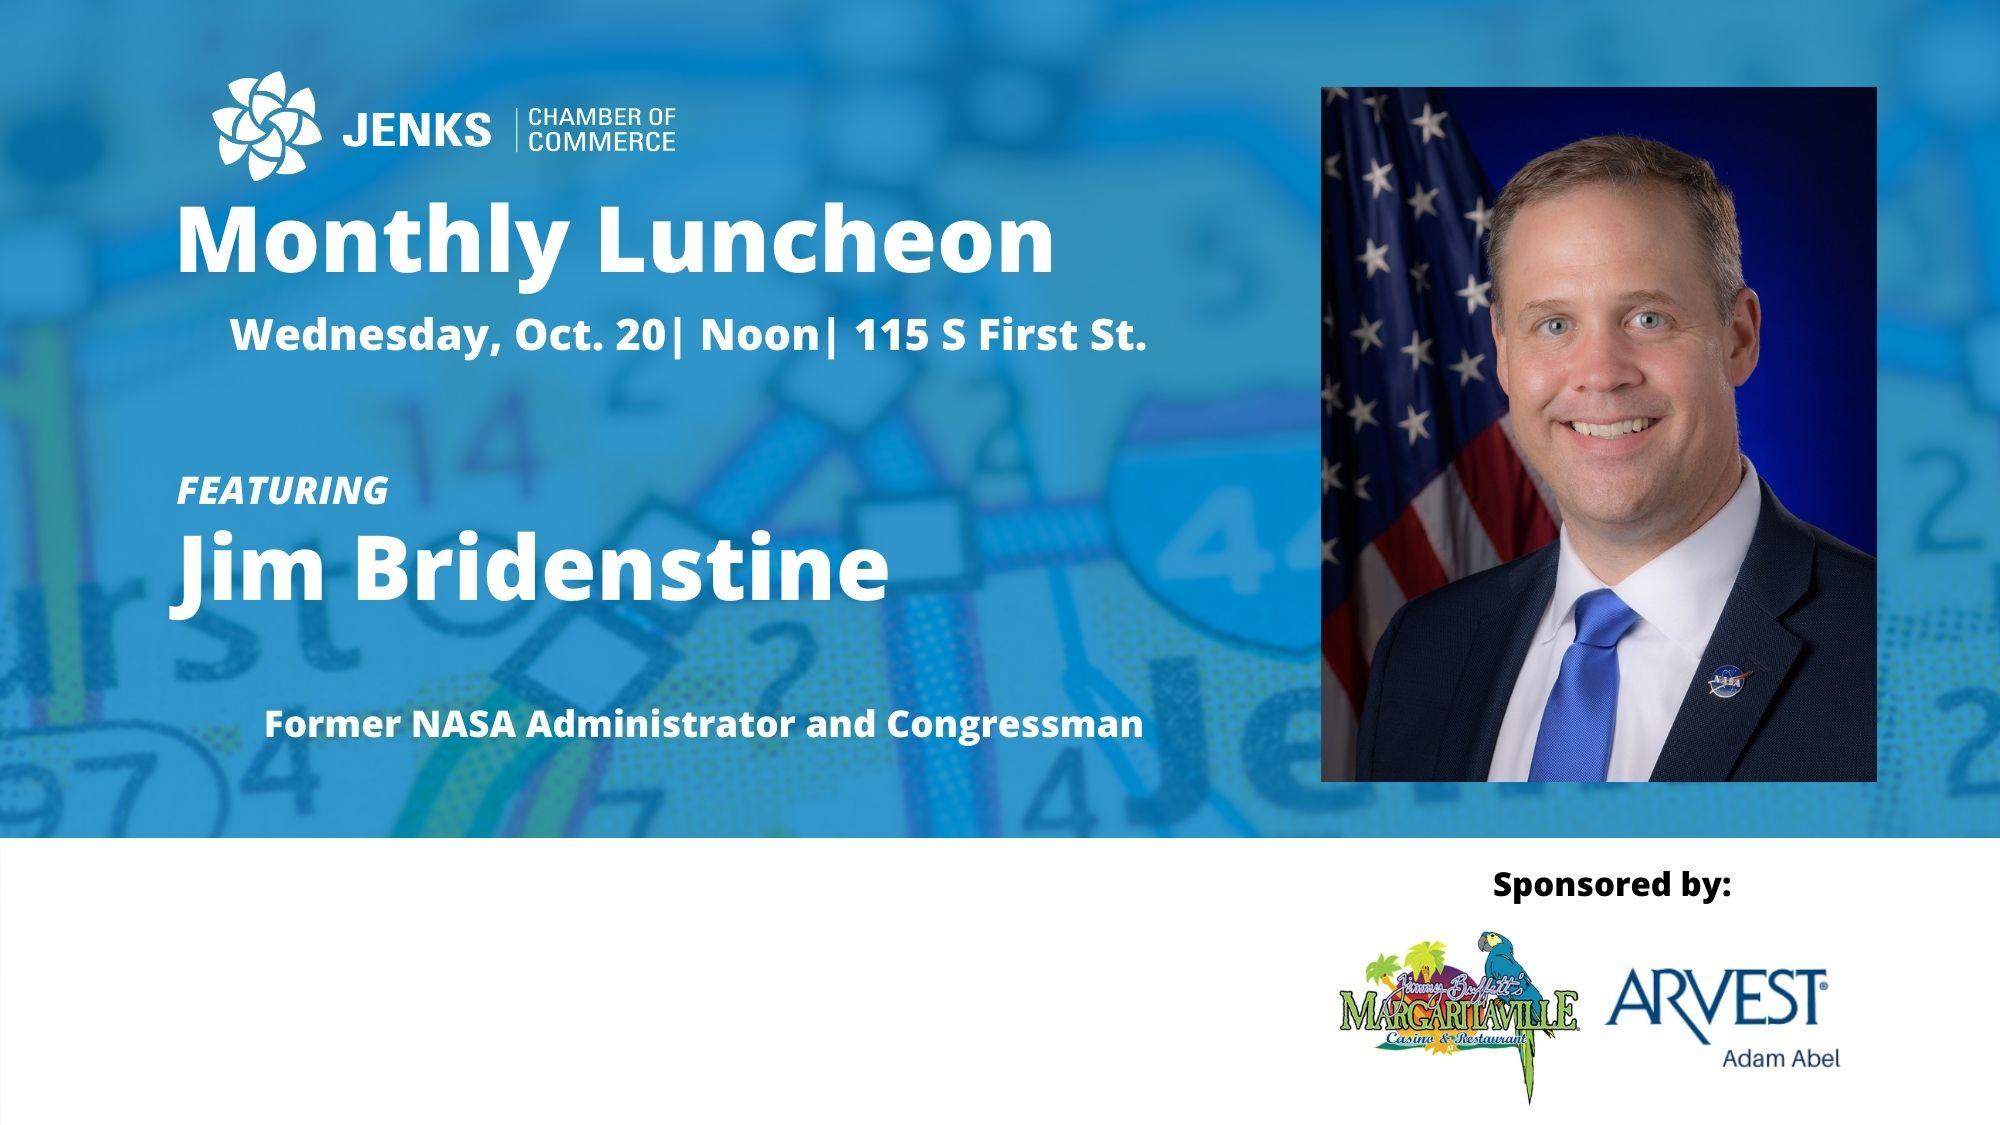 A graphic for the October Monthly LUncheon, featuring Jim Bridenstine